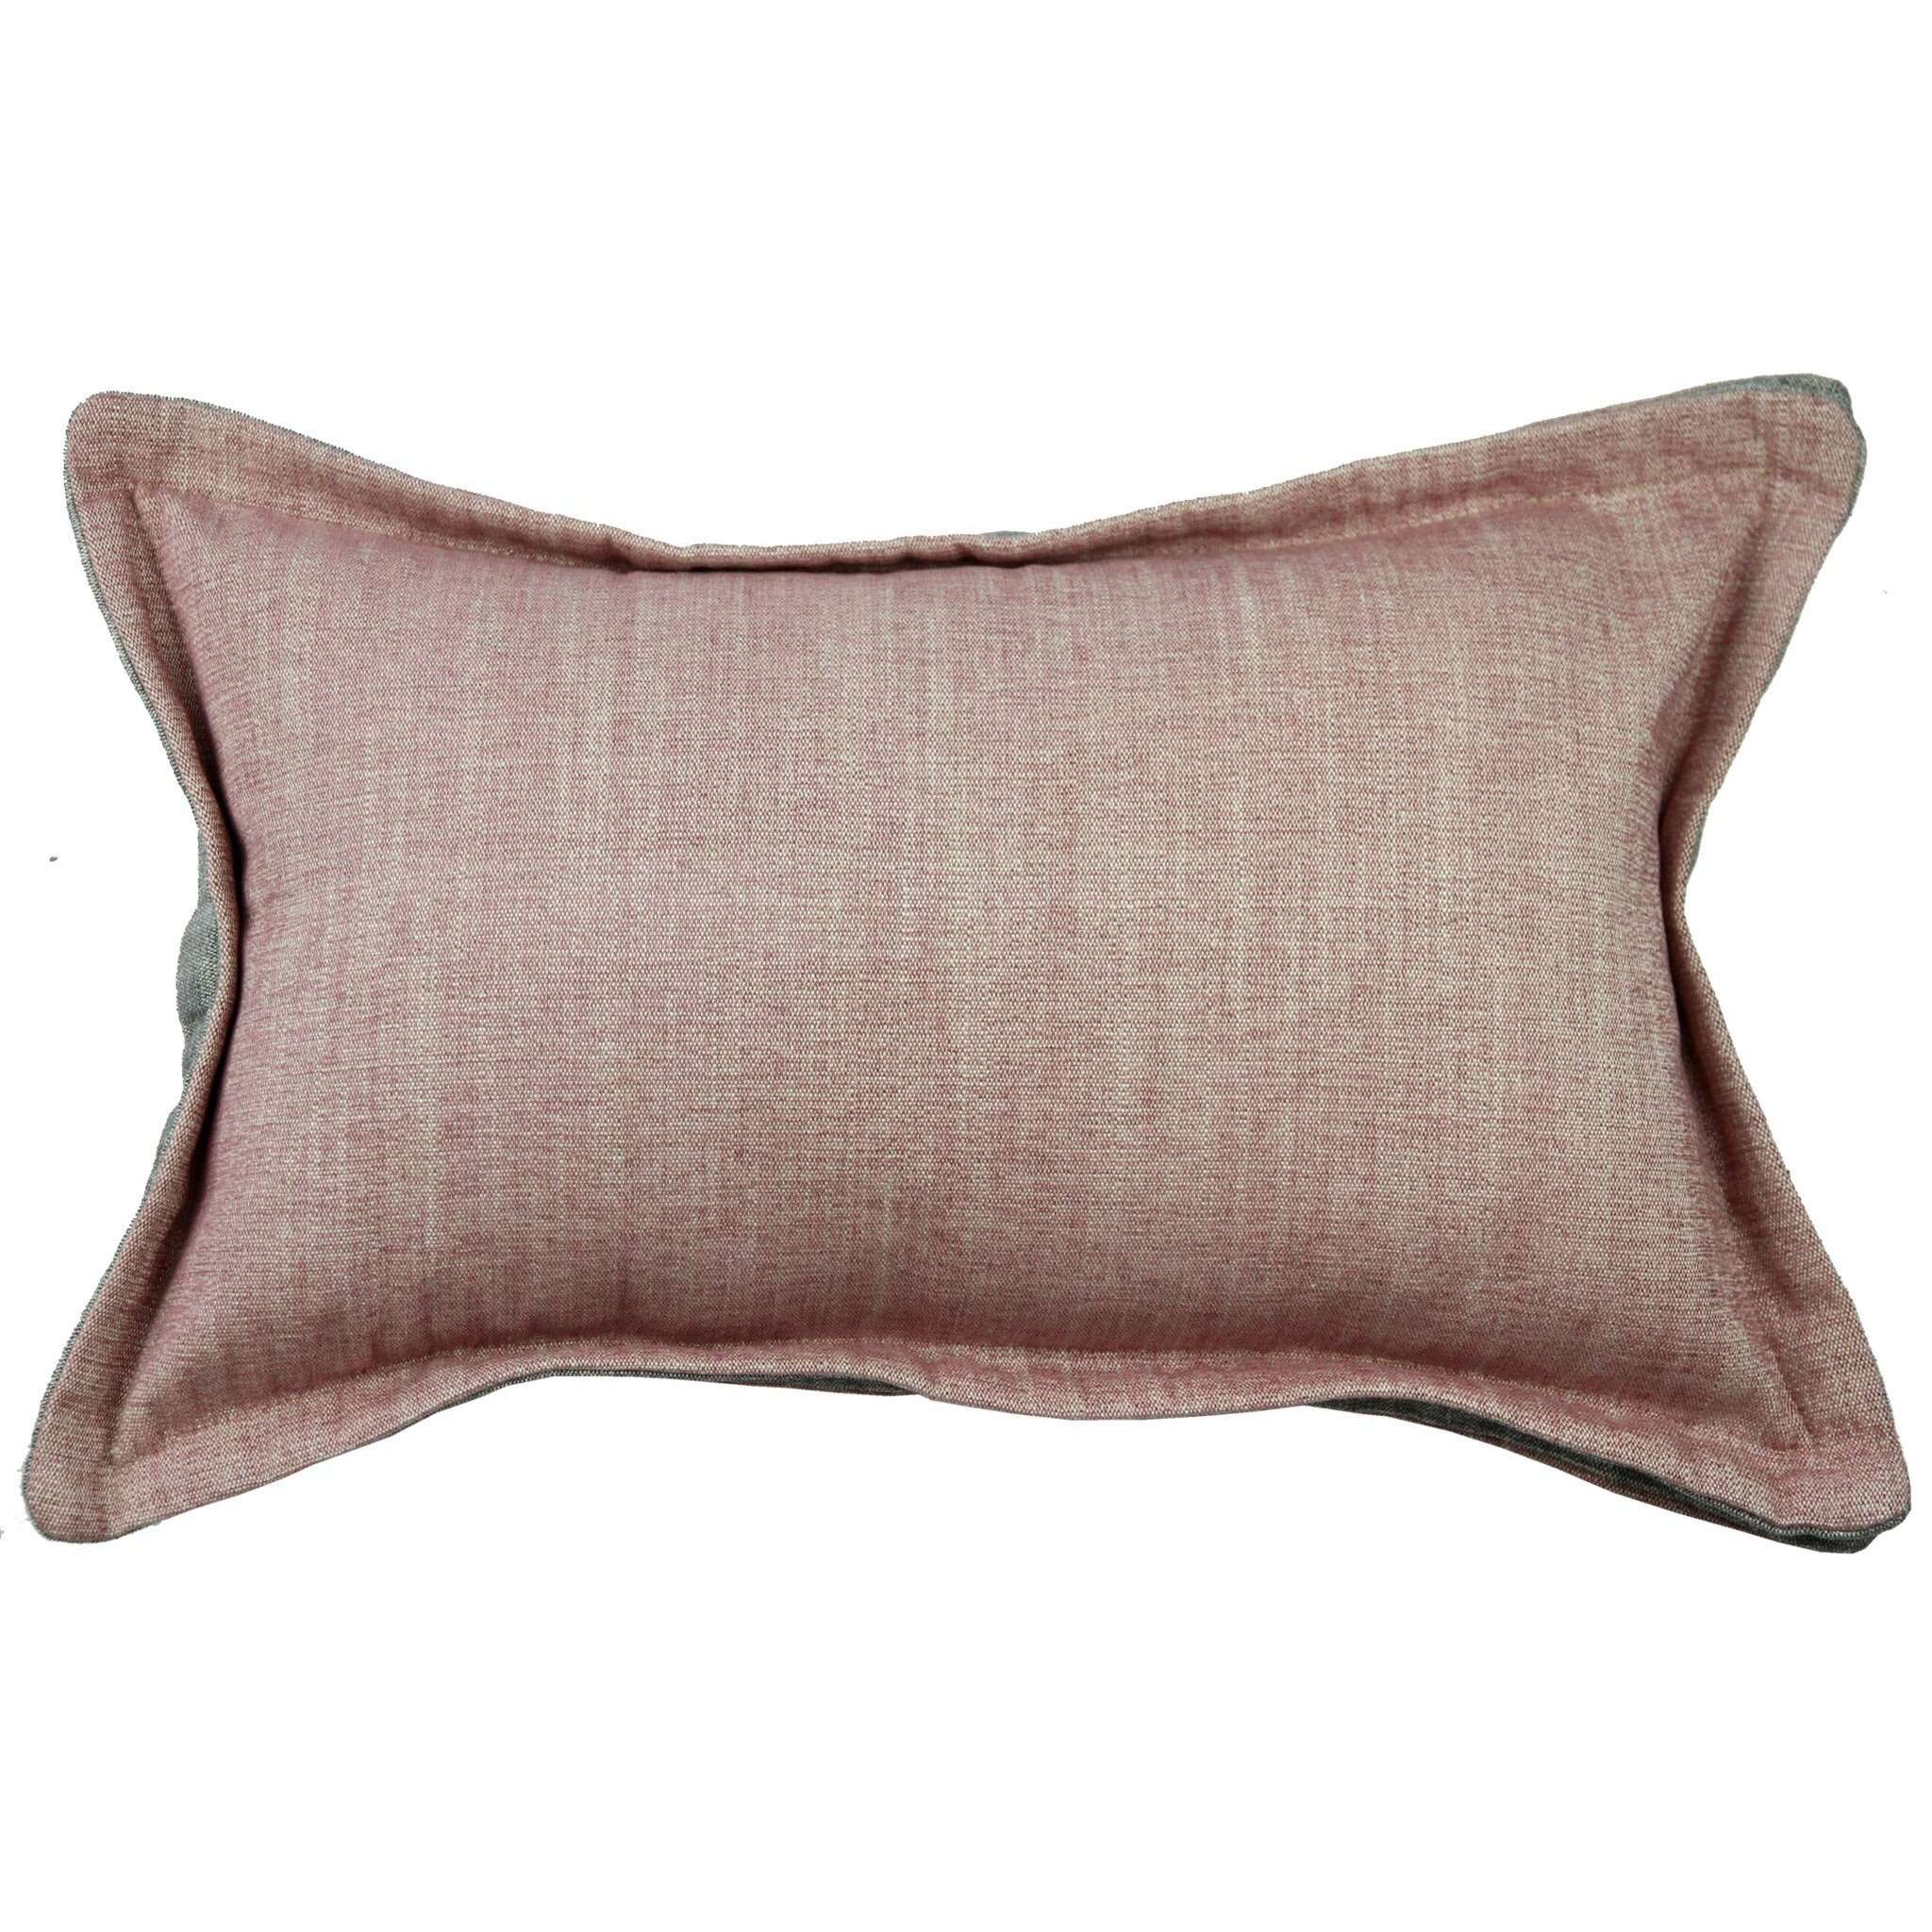 McAlister Textiles Rhumba Accent Blush Pink + Grey Pillow Pillow Cover Only 50cm x 30cm